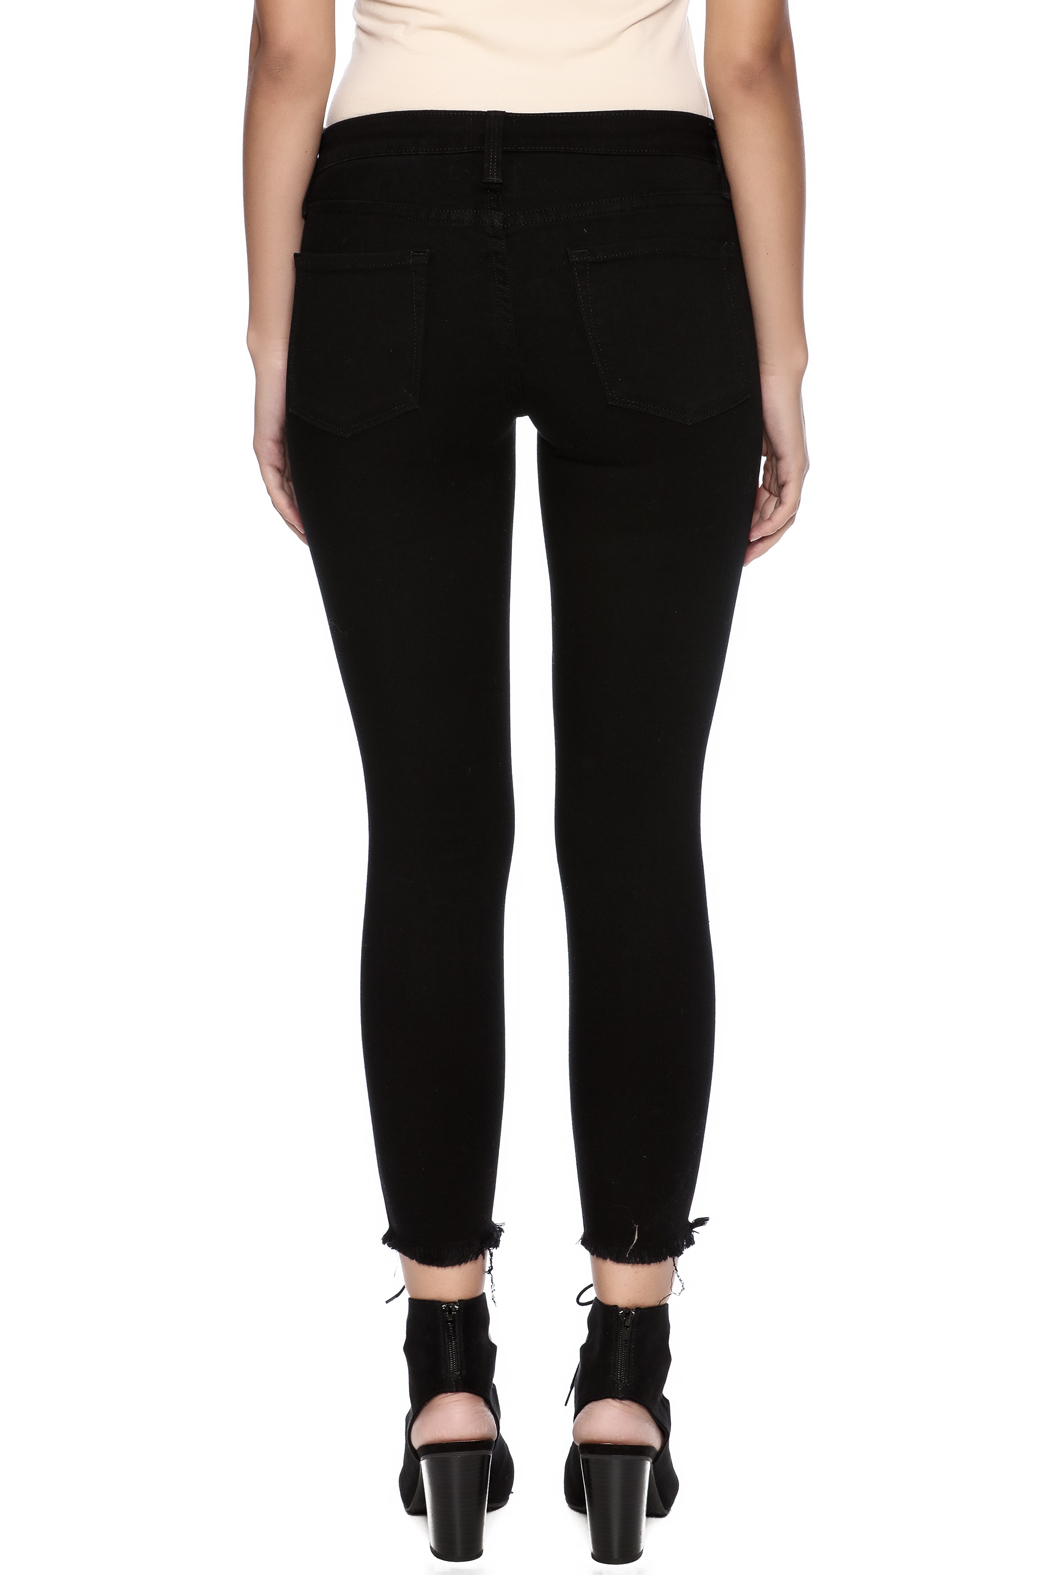 1652b53f855 just black Distressed Skinny Jean from California by Rose & Sage ...